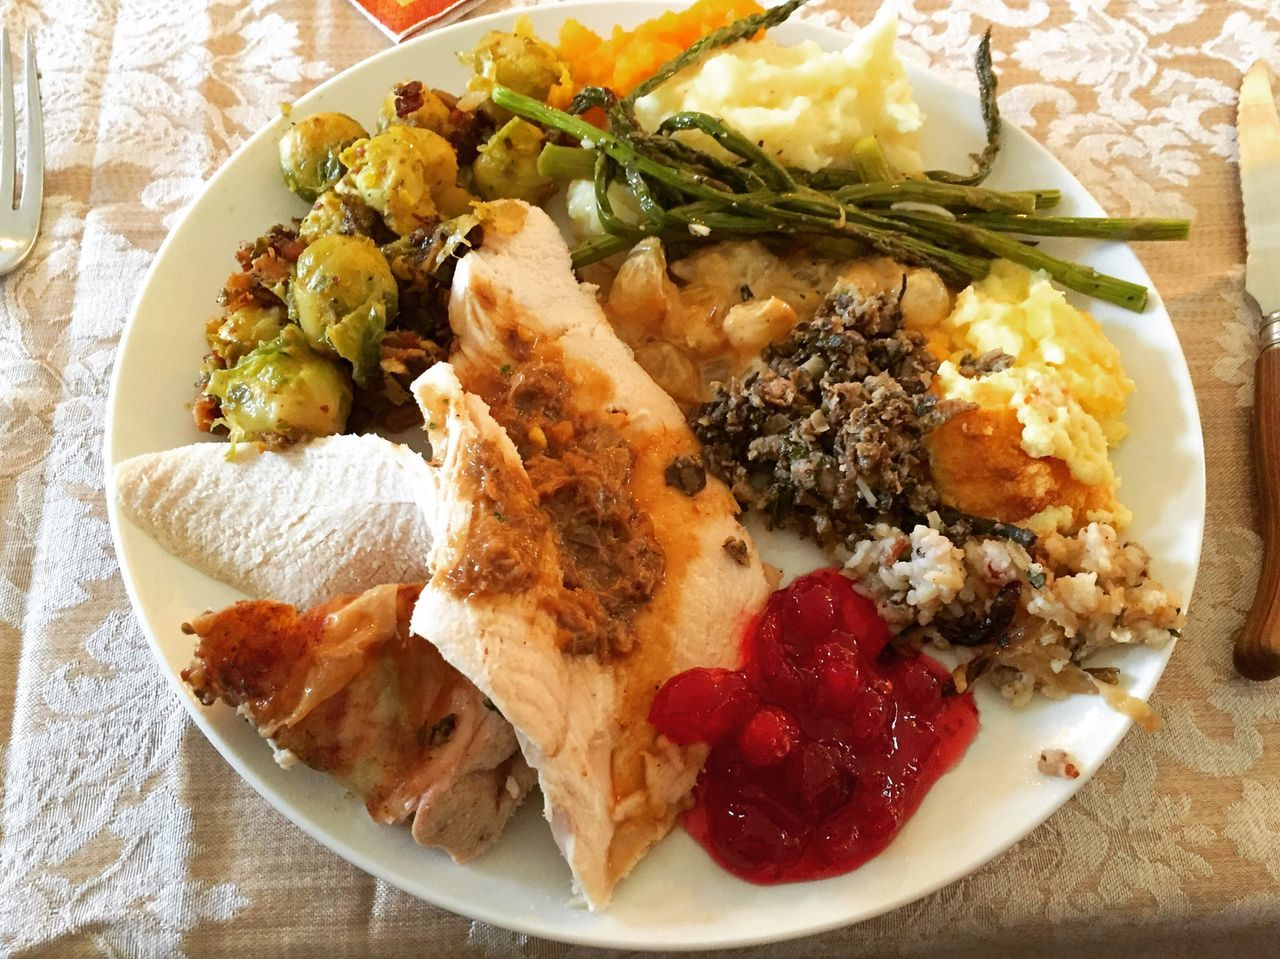 Thanksgiving Meal Thanksgiving Meal Ready-to-eat Food Food And Drink Freshness Healthy Eating Plate High Angle View Close-up Indoors  No People Day Dinner Celebration Happy Warm Eating Turkey Autumn Fall Sweet Family Togetherness Calm